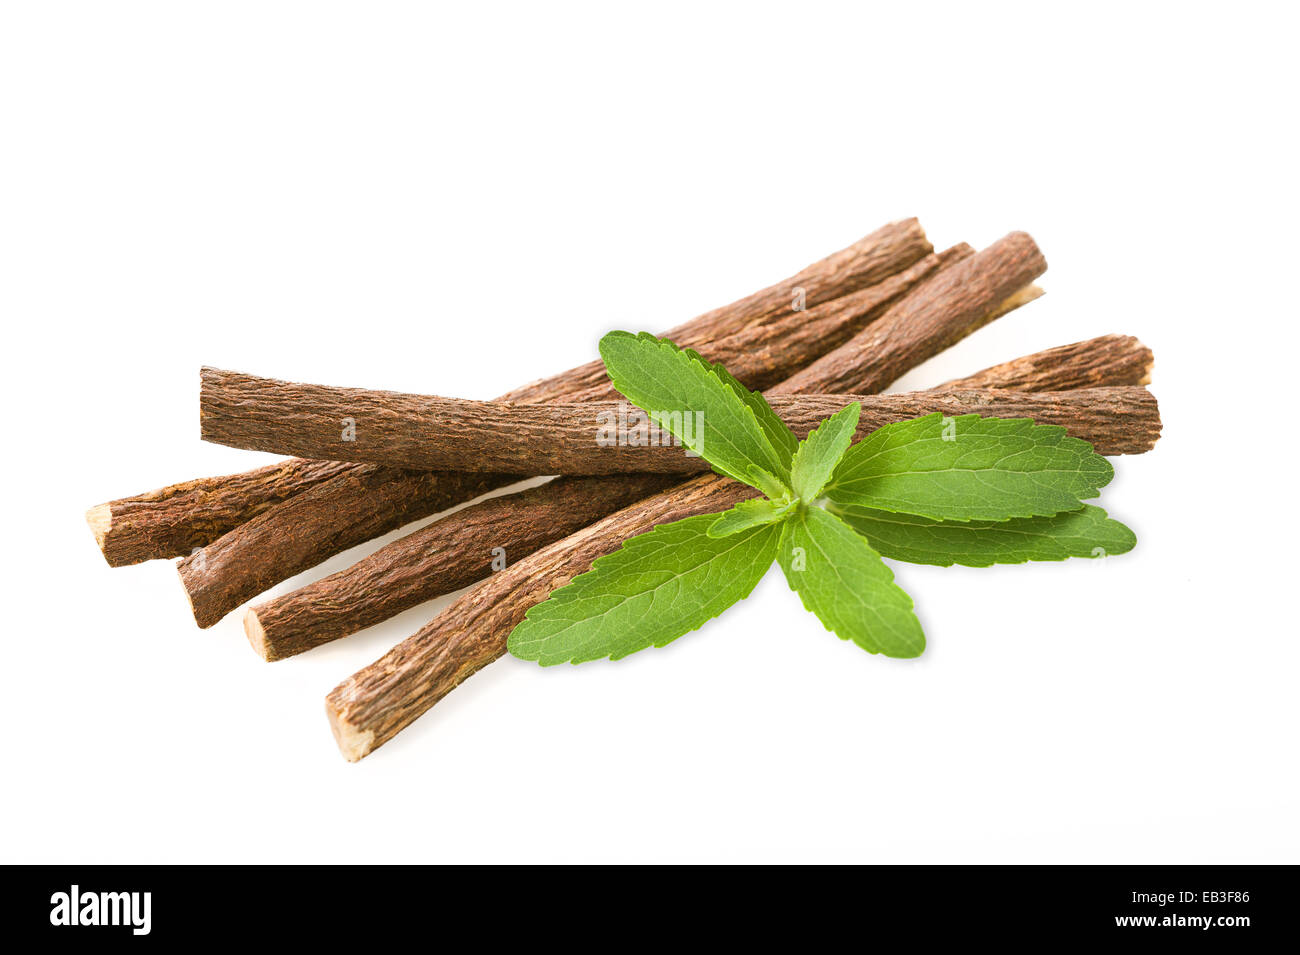 Roots licorice and stevia isolated on white - Stock Image